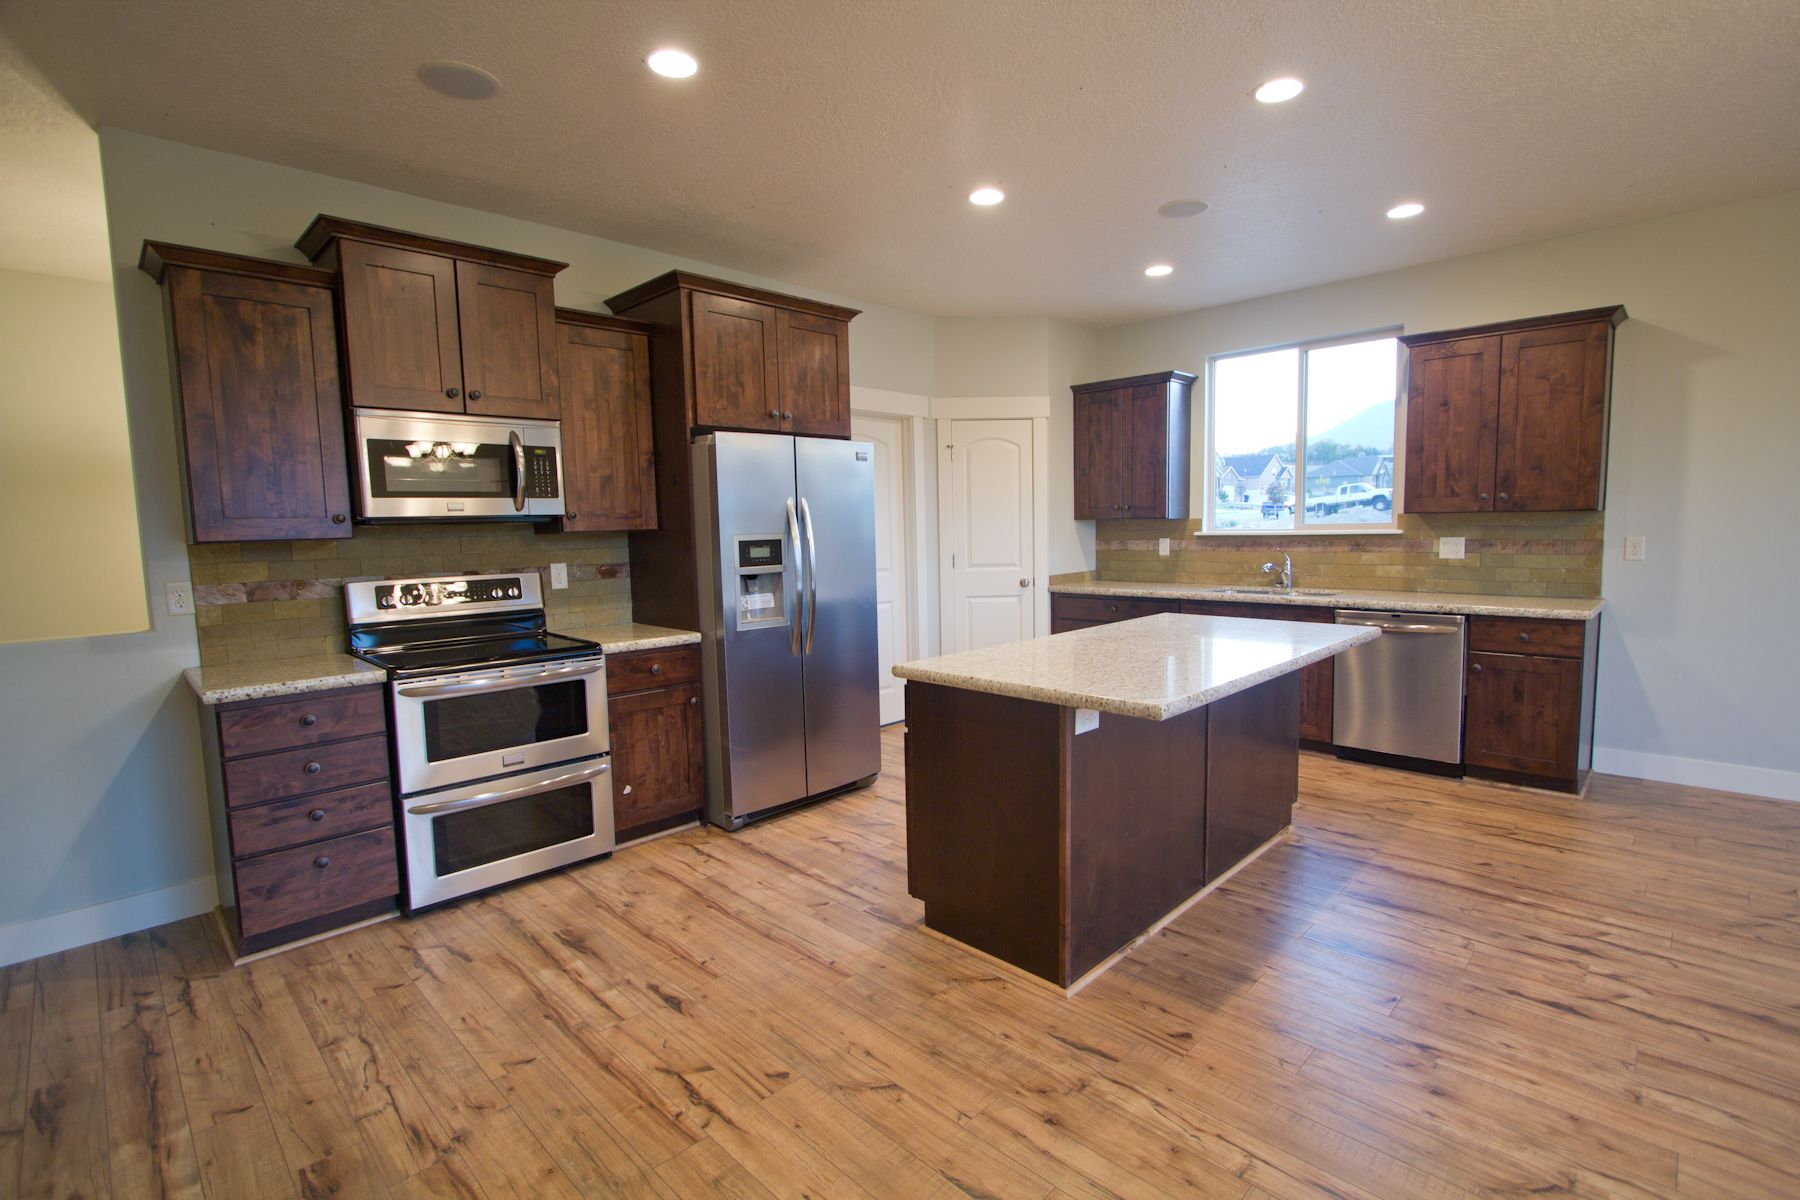 Solid Wood Floor In Kitchen Contemporary Craftsman Espresso Cabinets With White Porcelain Top